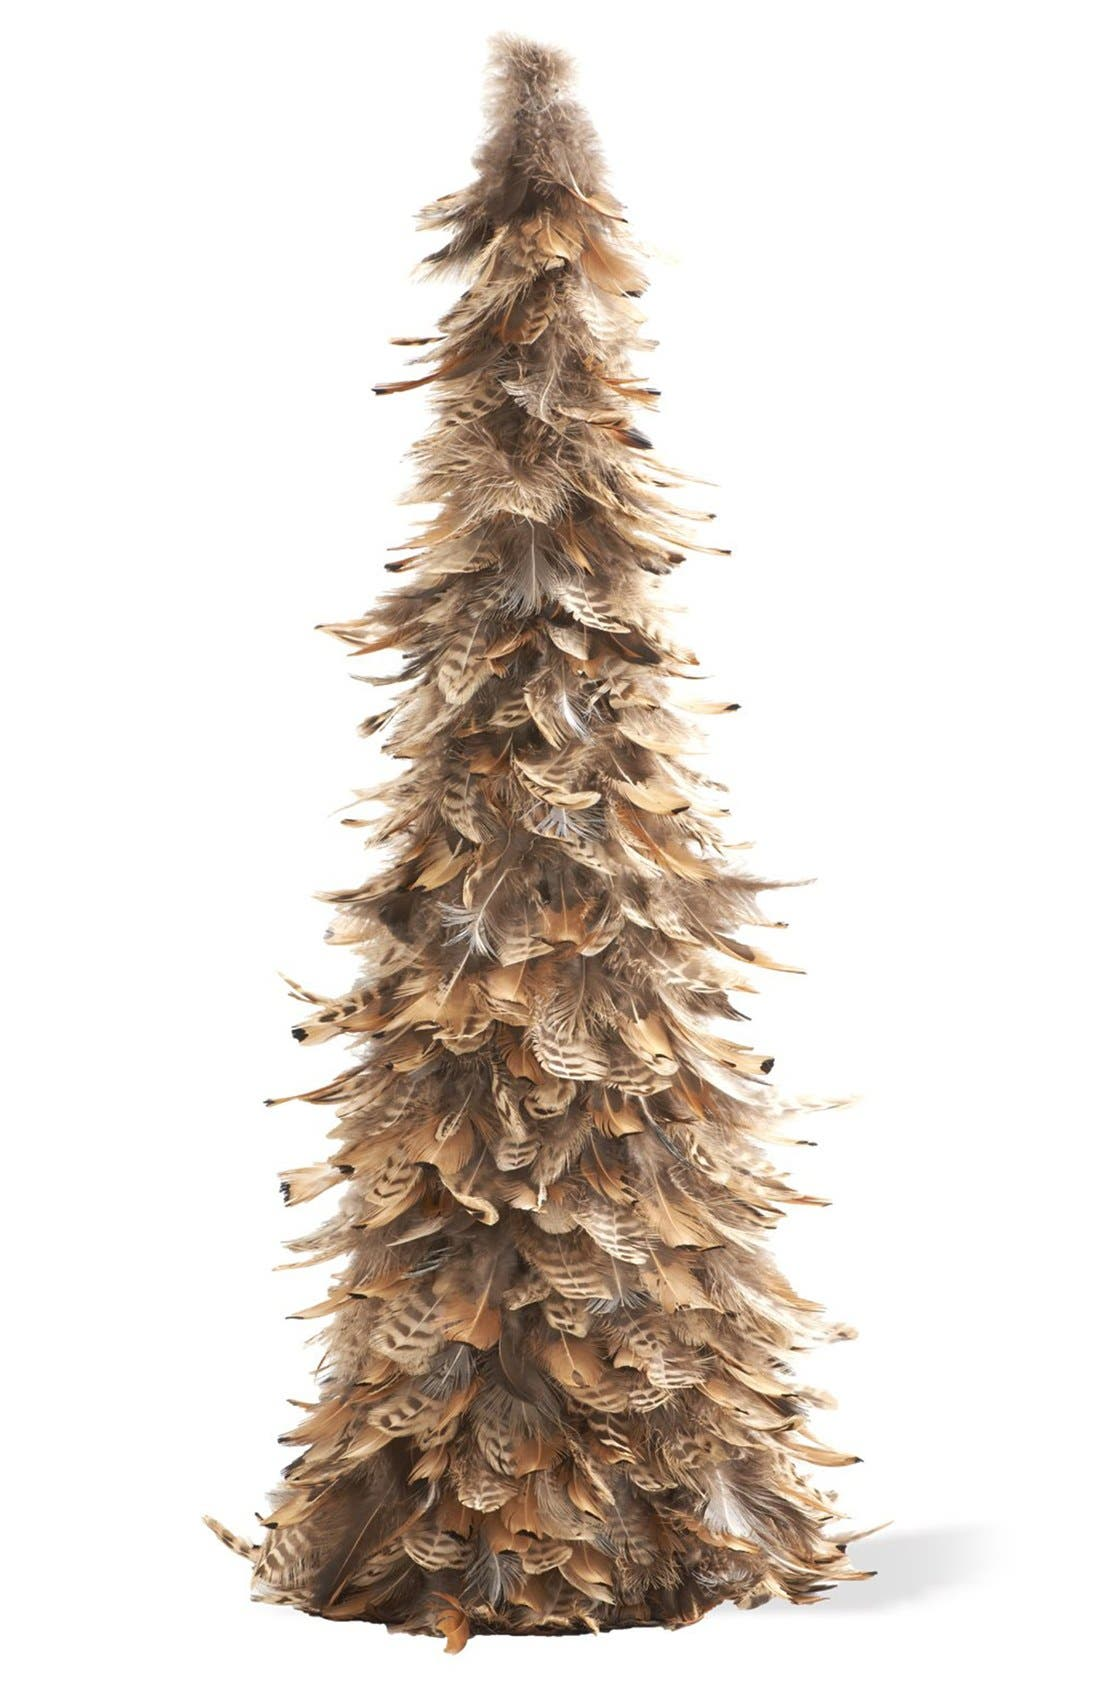 K & K Interiors 'Rust Feather' Topiary Tree Decoration